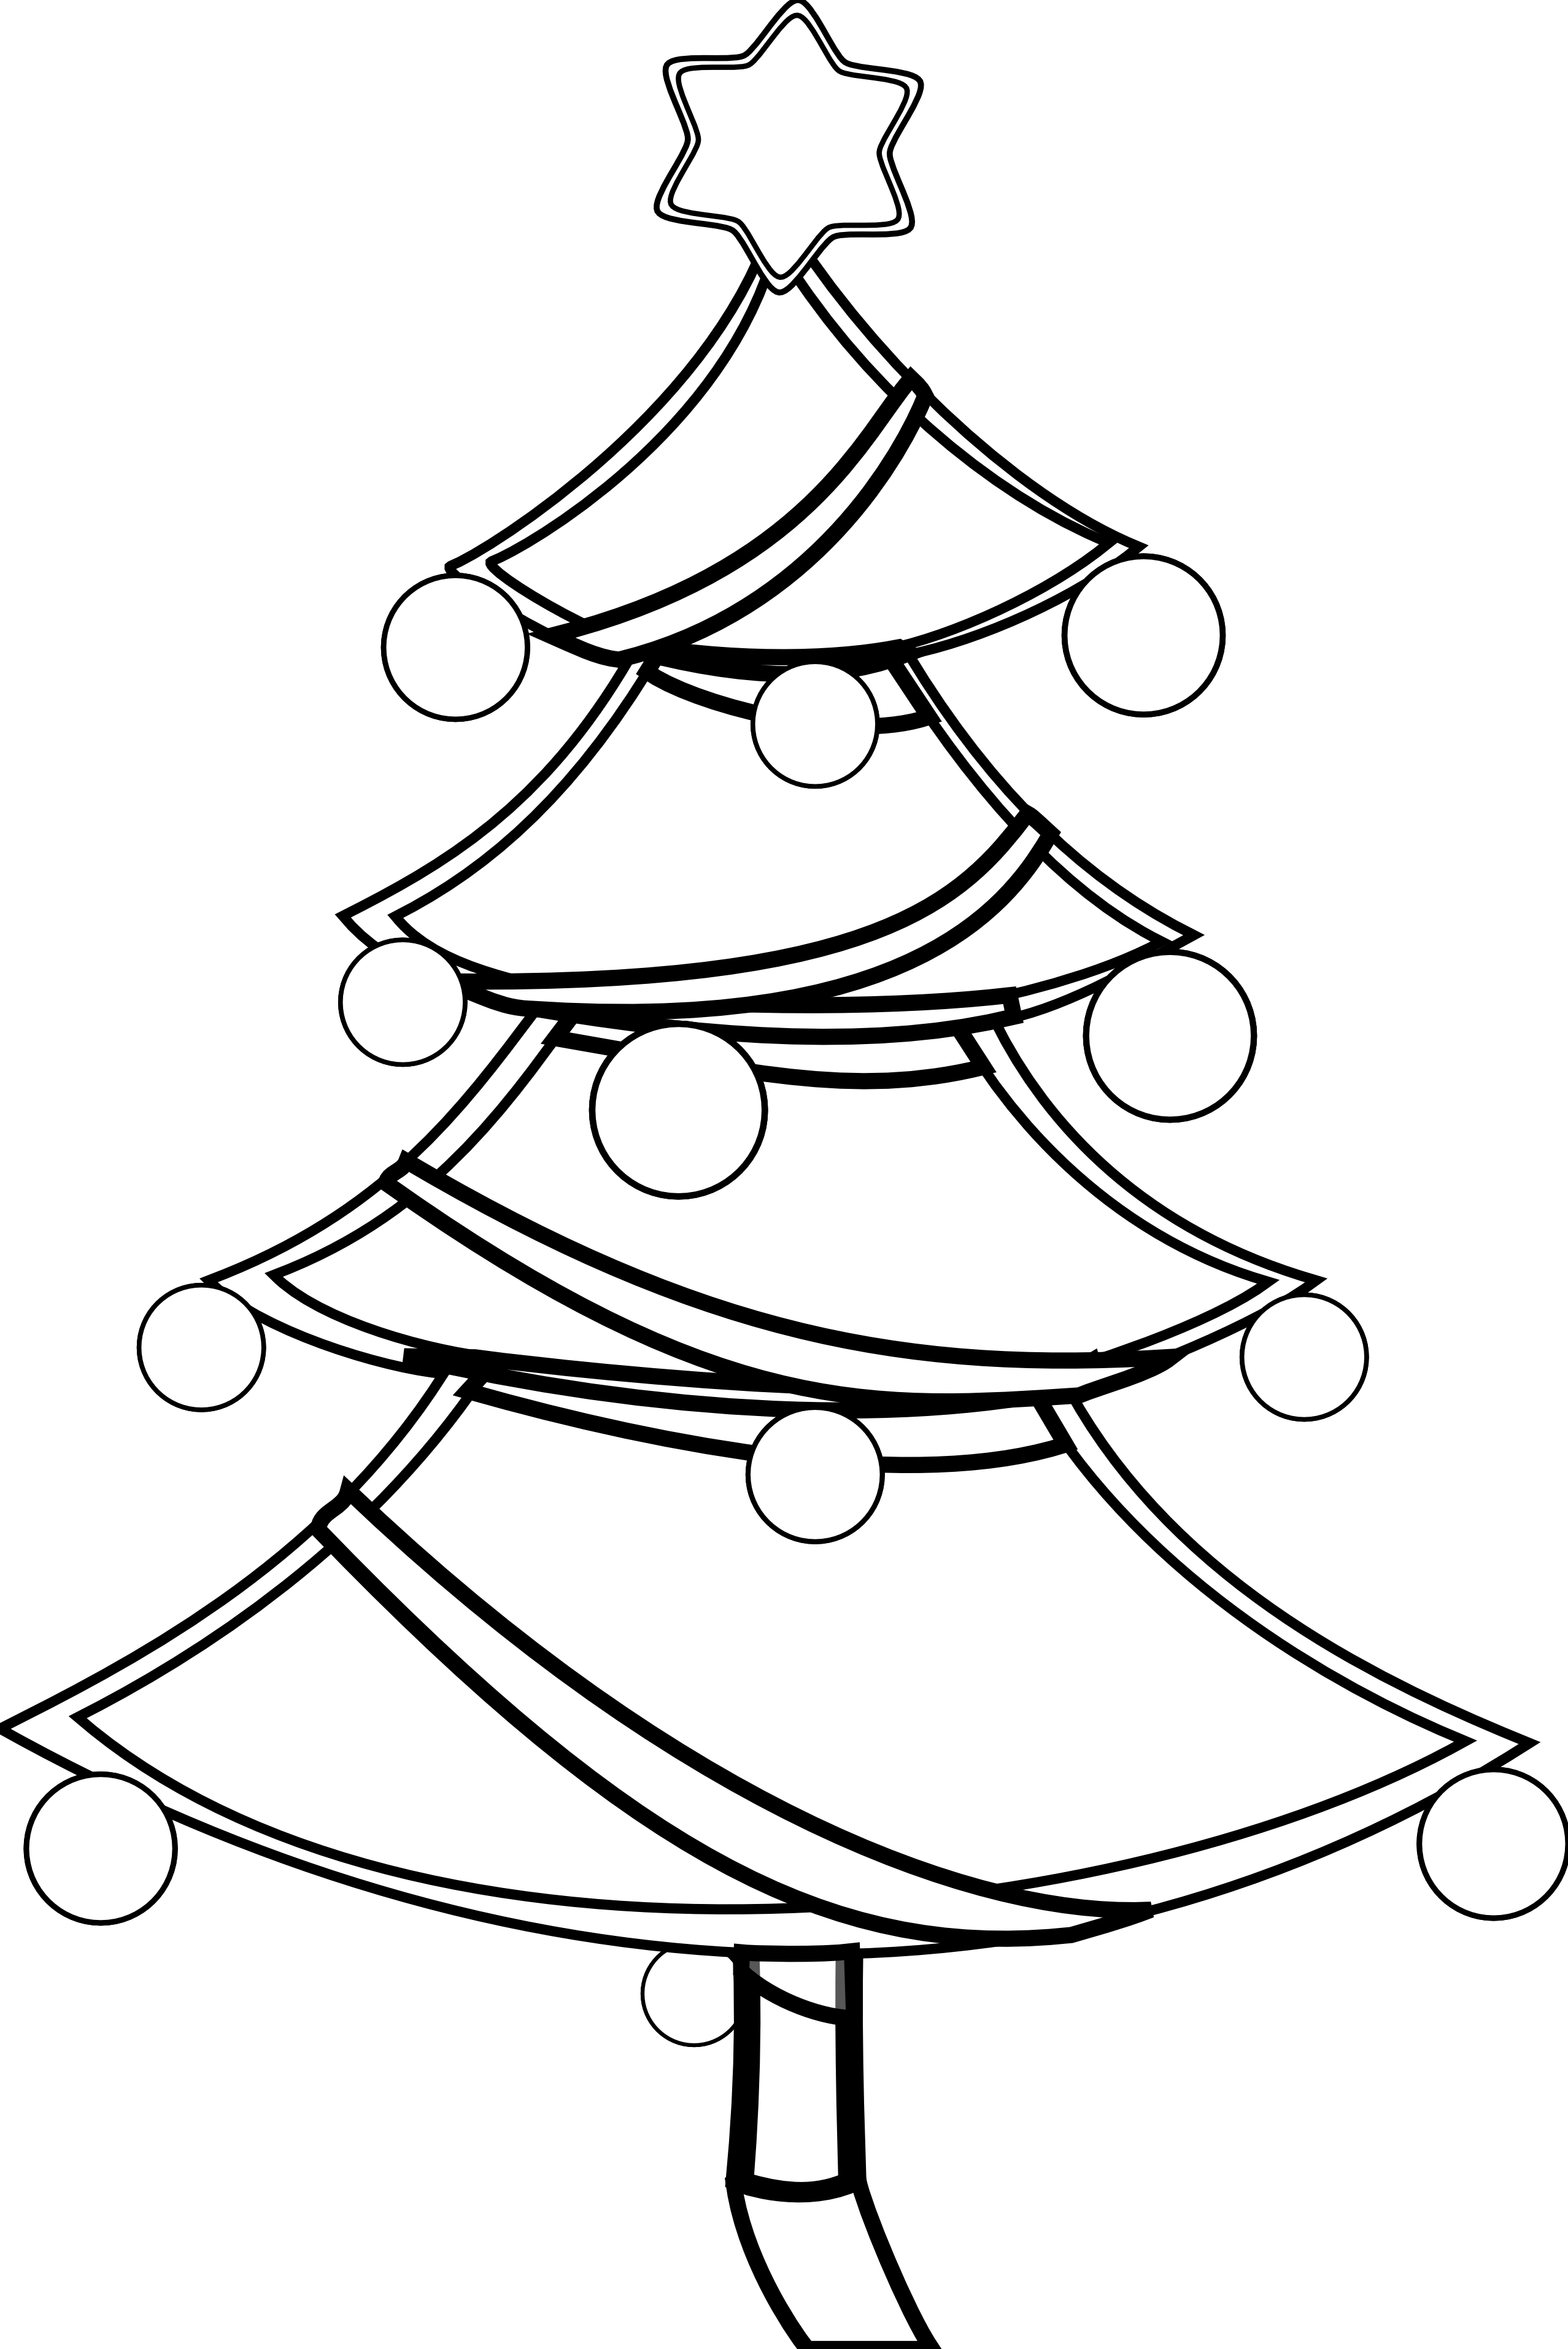 41 Black And White Tree Pictures Free Cliparts That You Can Download